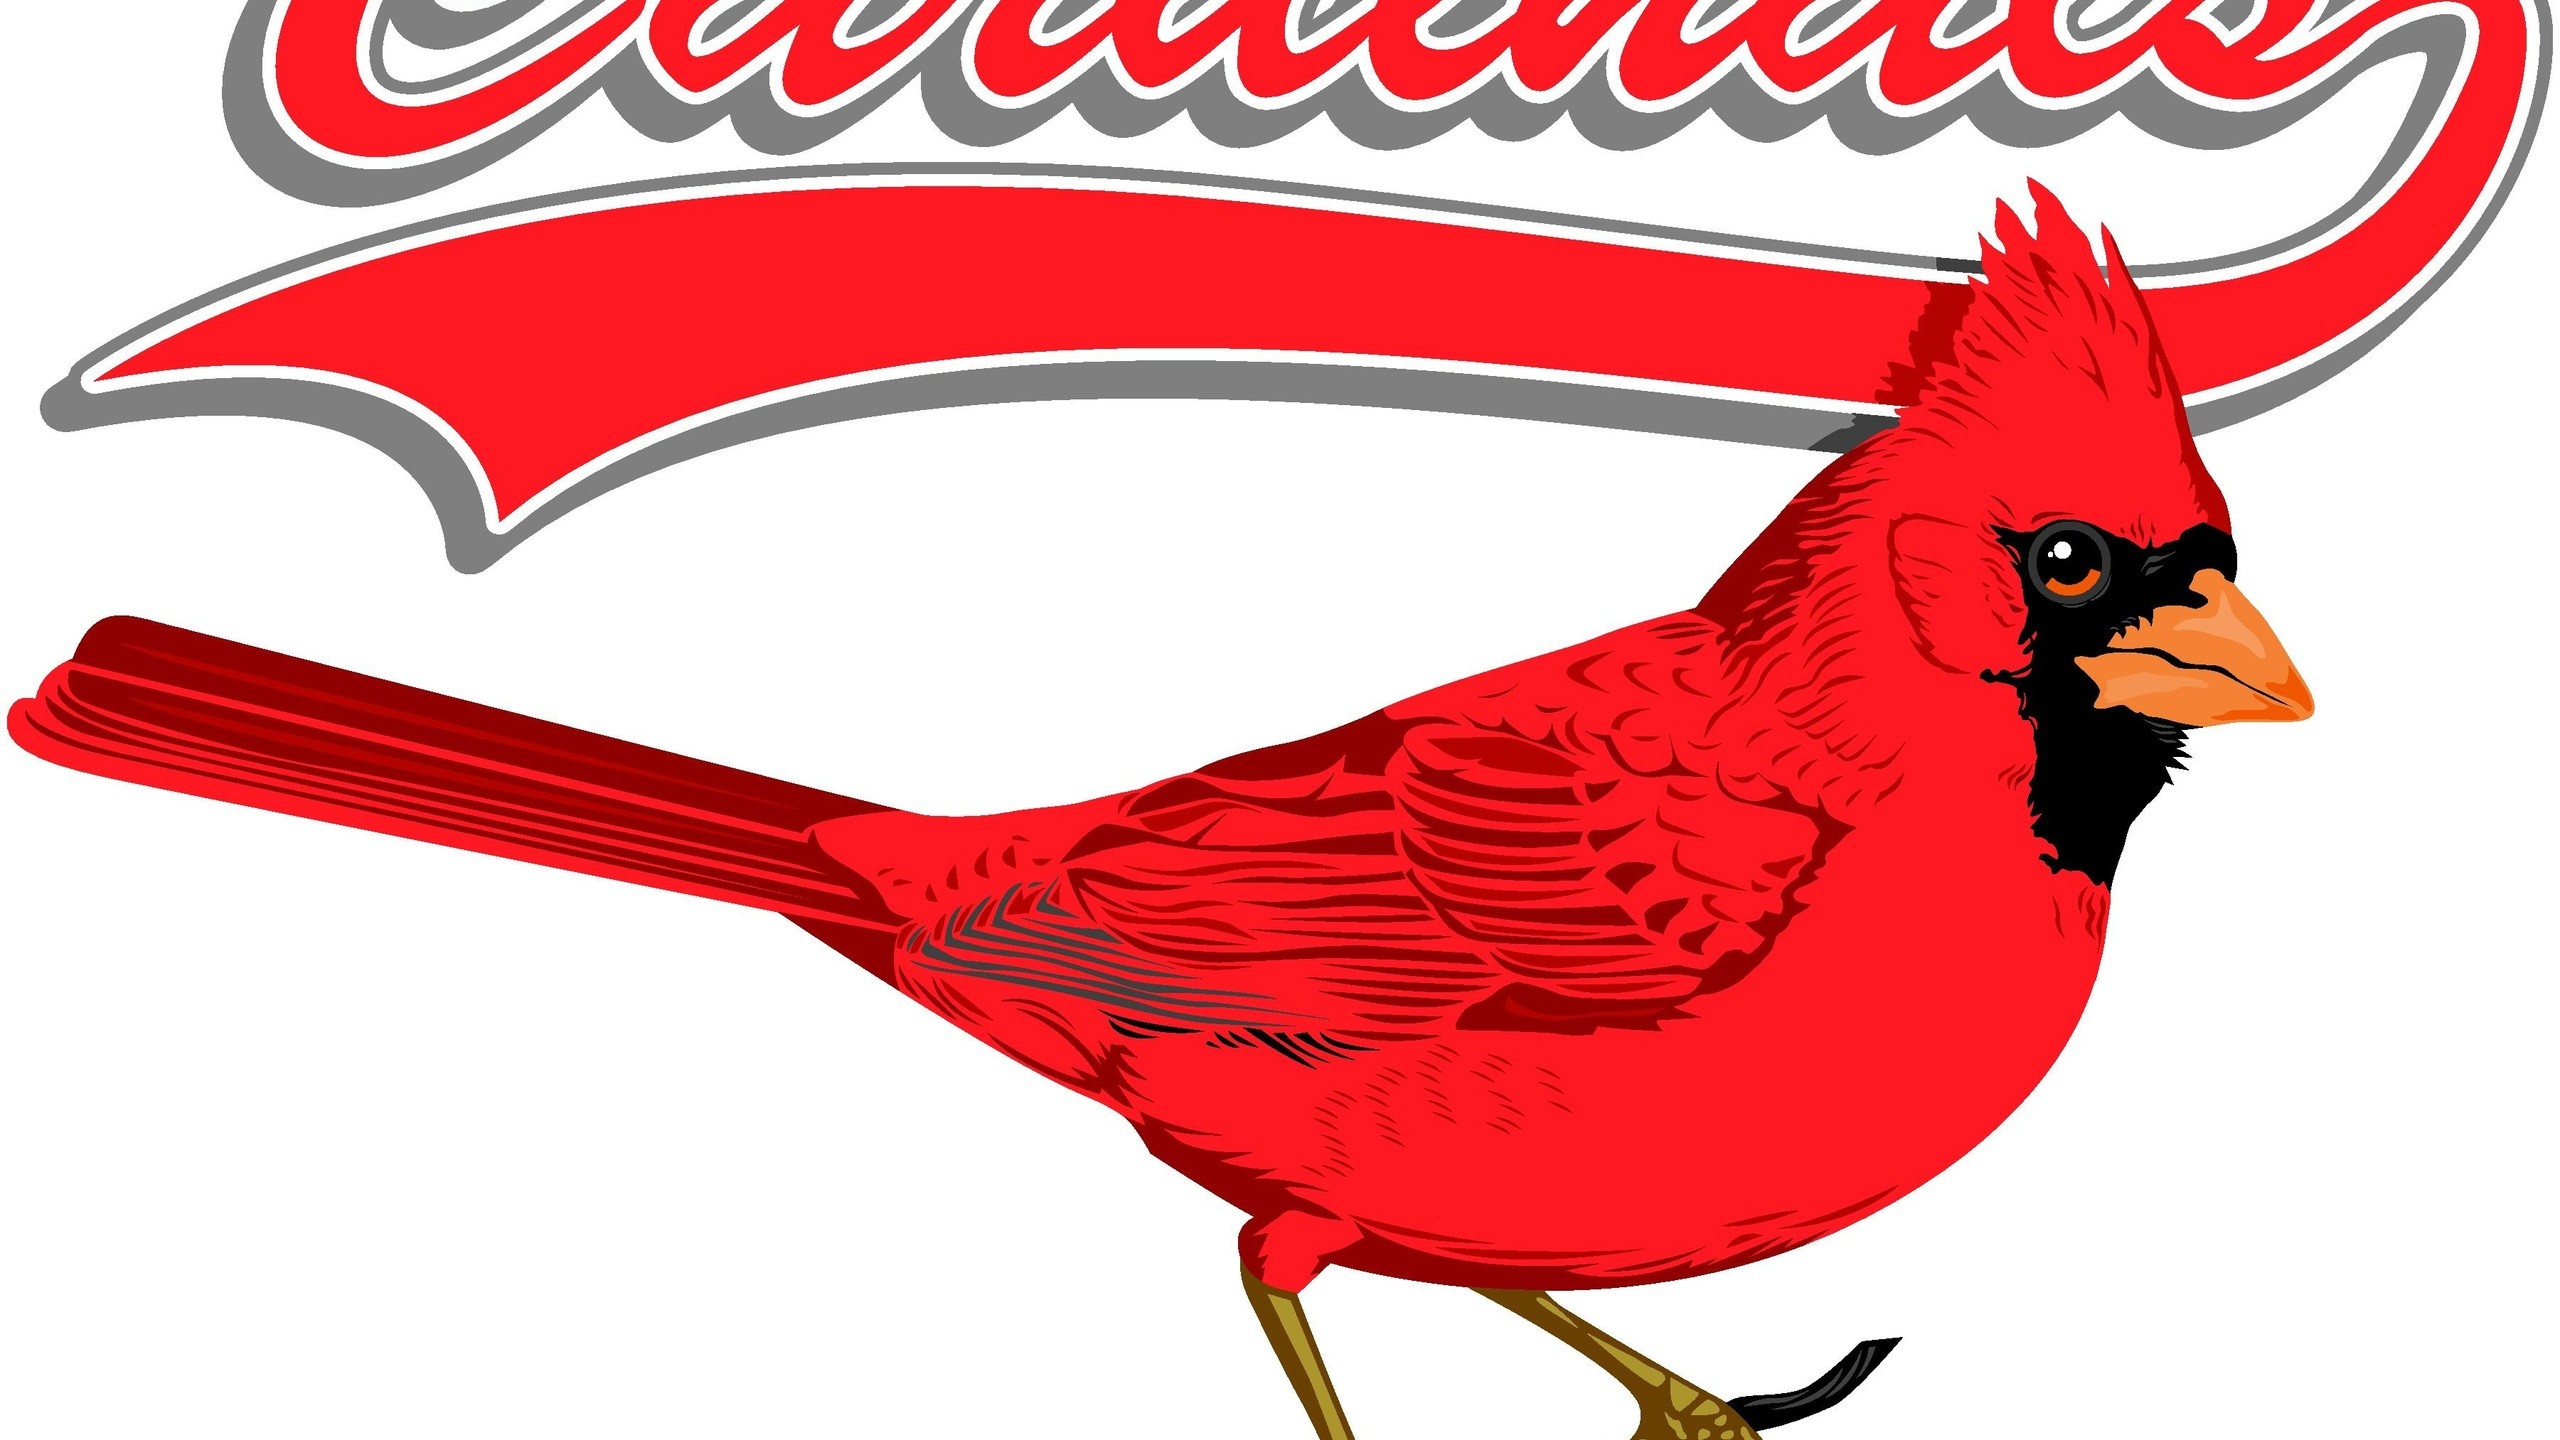 2560x1440 Sports, St. Louis Cardinals Baseball Mlb Logo Background, Mlb, St. Louis